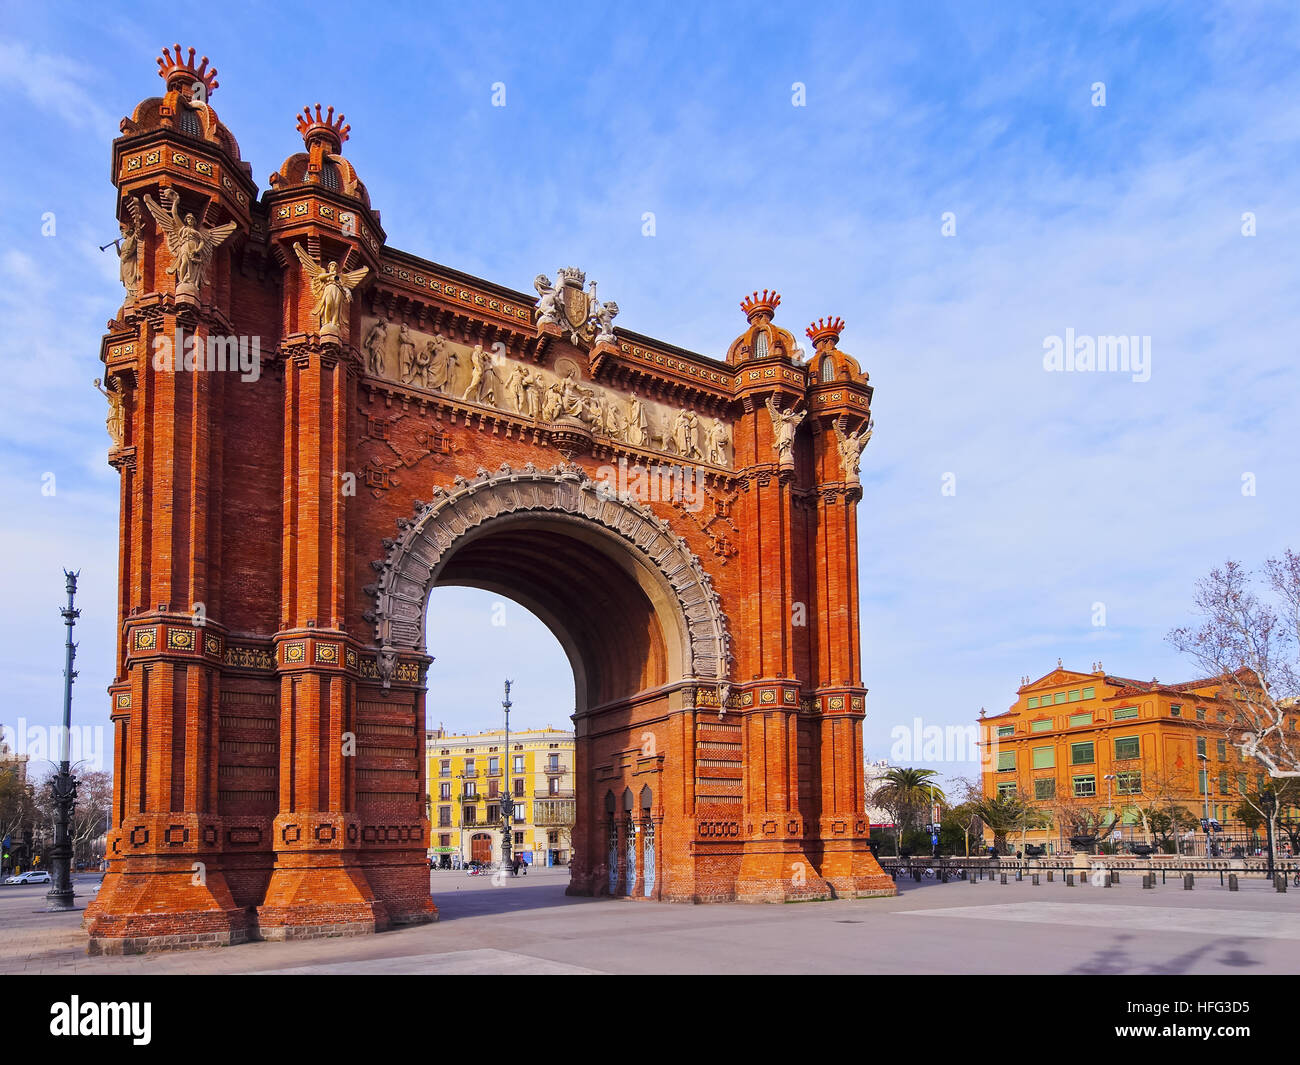 Arc de Triomf, Arco de Triunfo, Triumphal Arch, Barcelona, Catalonia, Spain Stock Photo